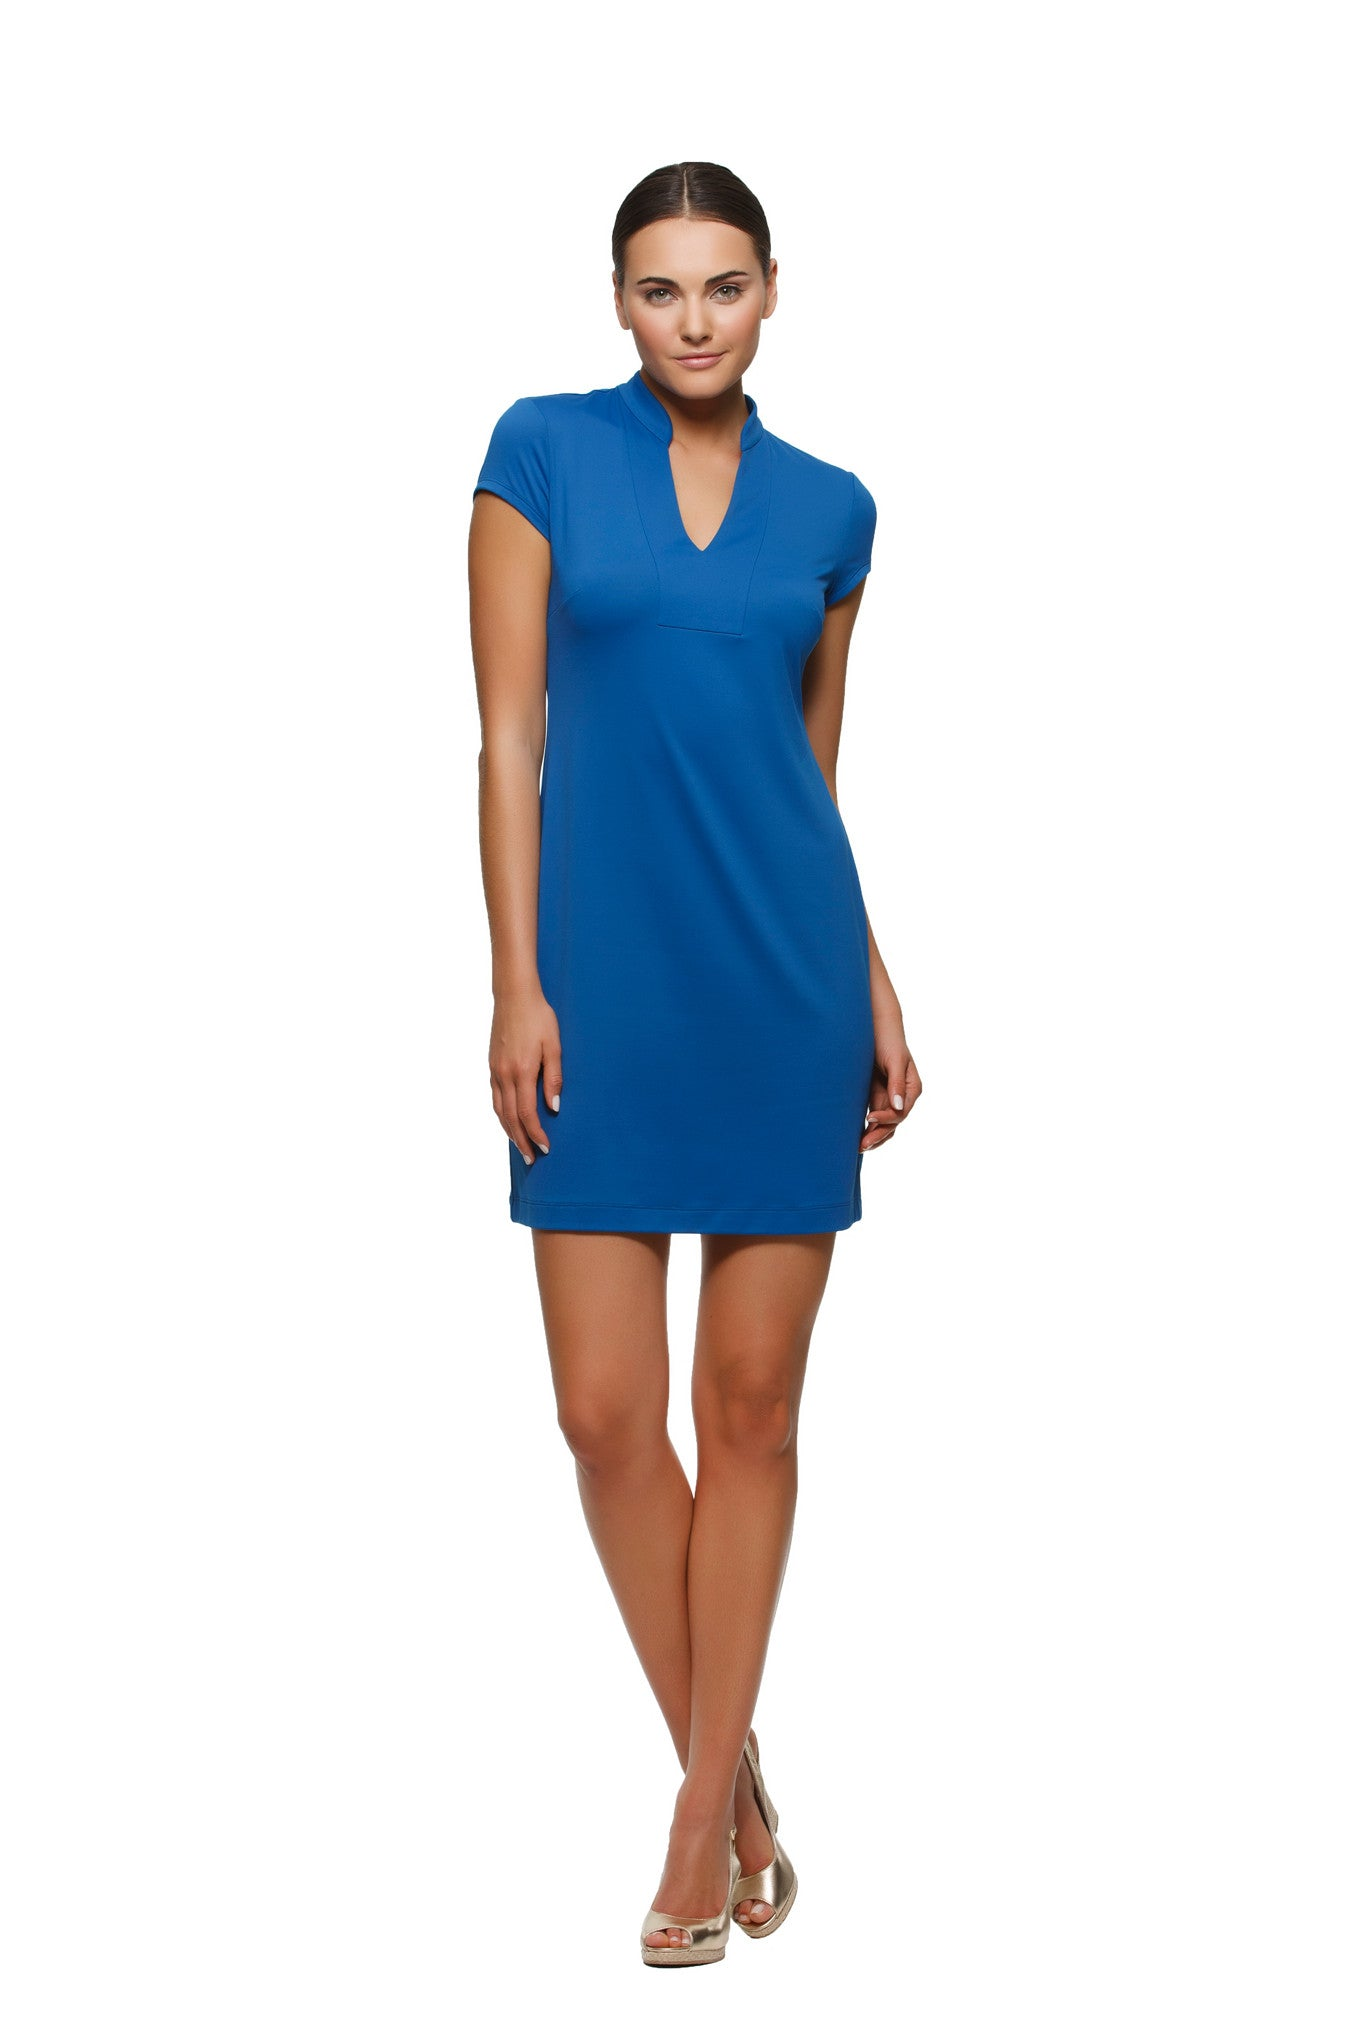 Parker Dress in Navy - Rulon Reed